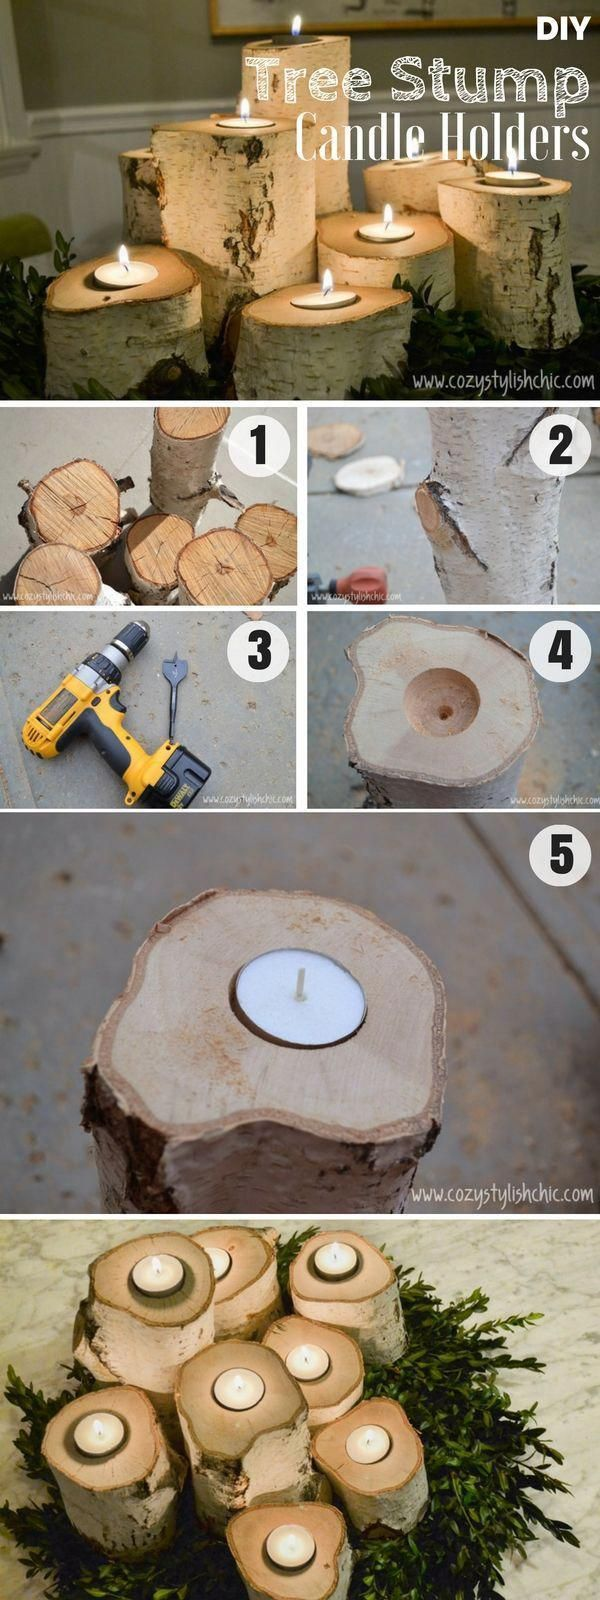 It is easy and quick DIY project that you can use every… #easyhomedecor